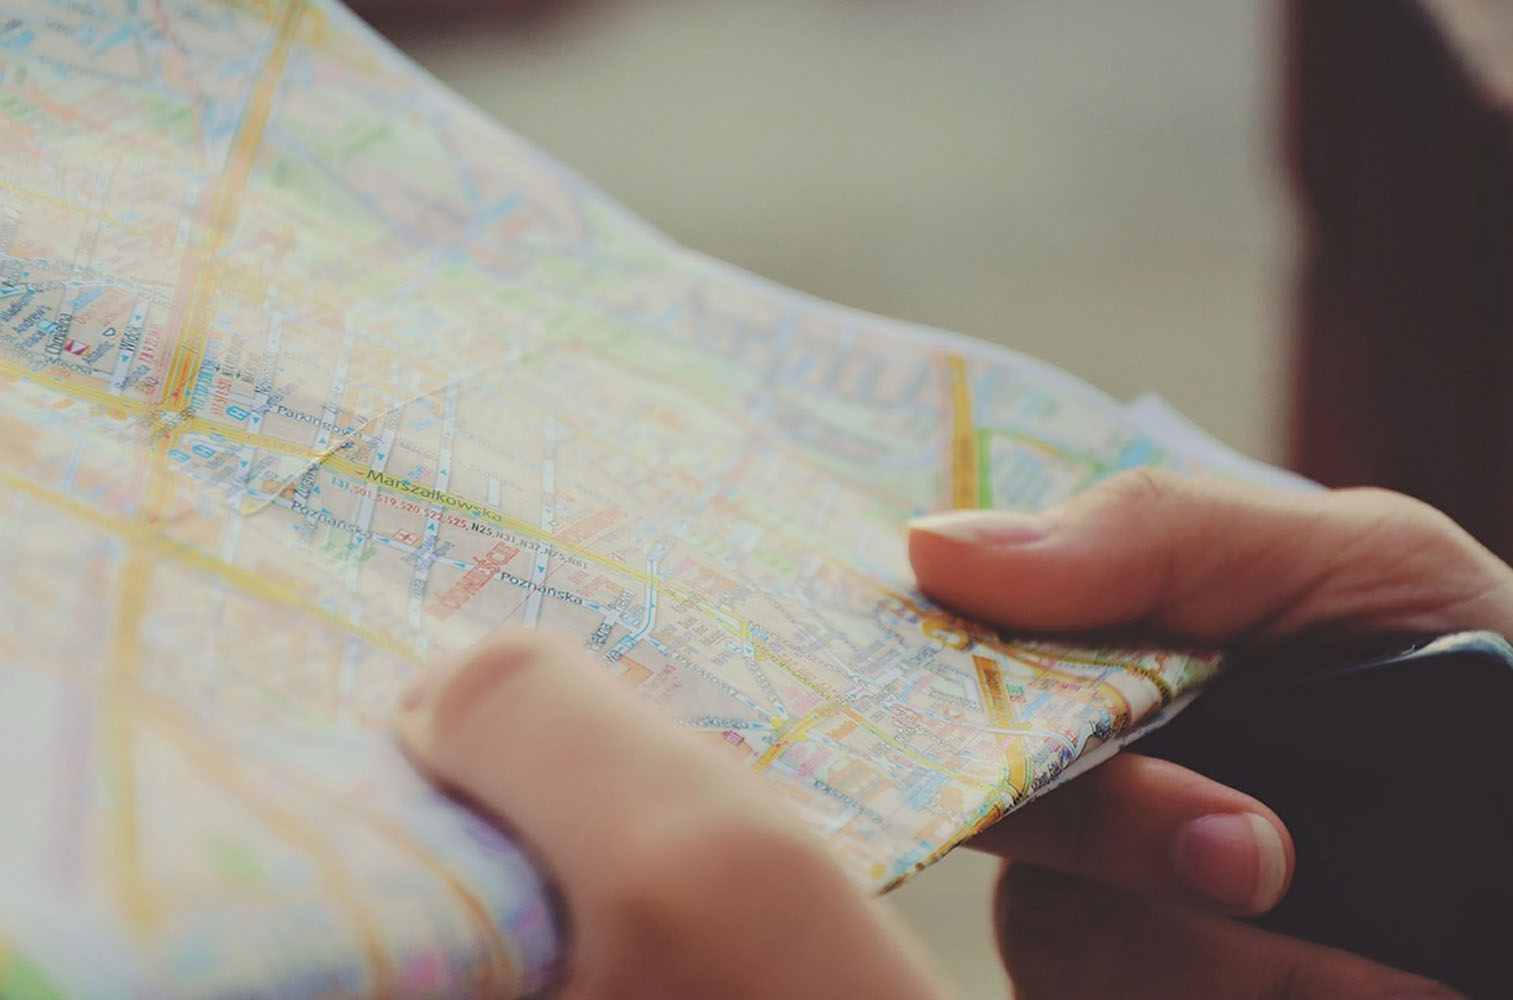 Person reading map